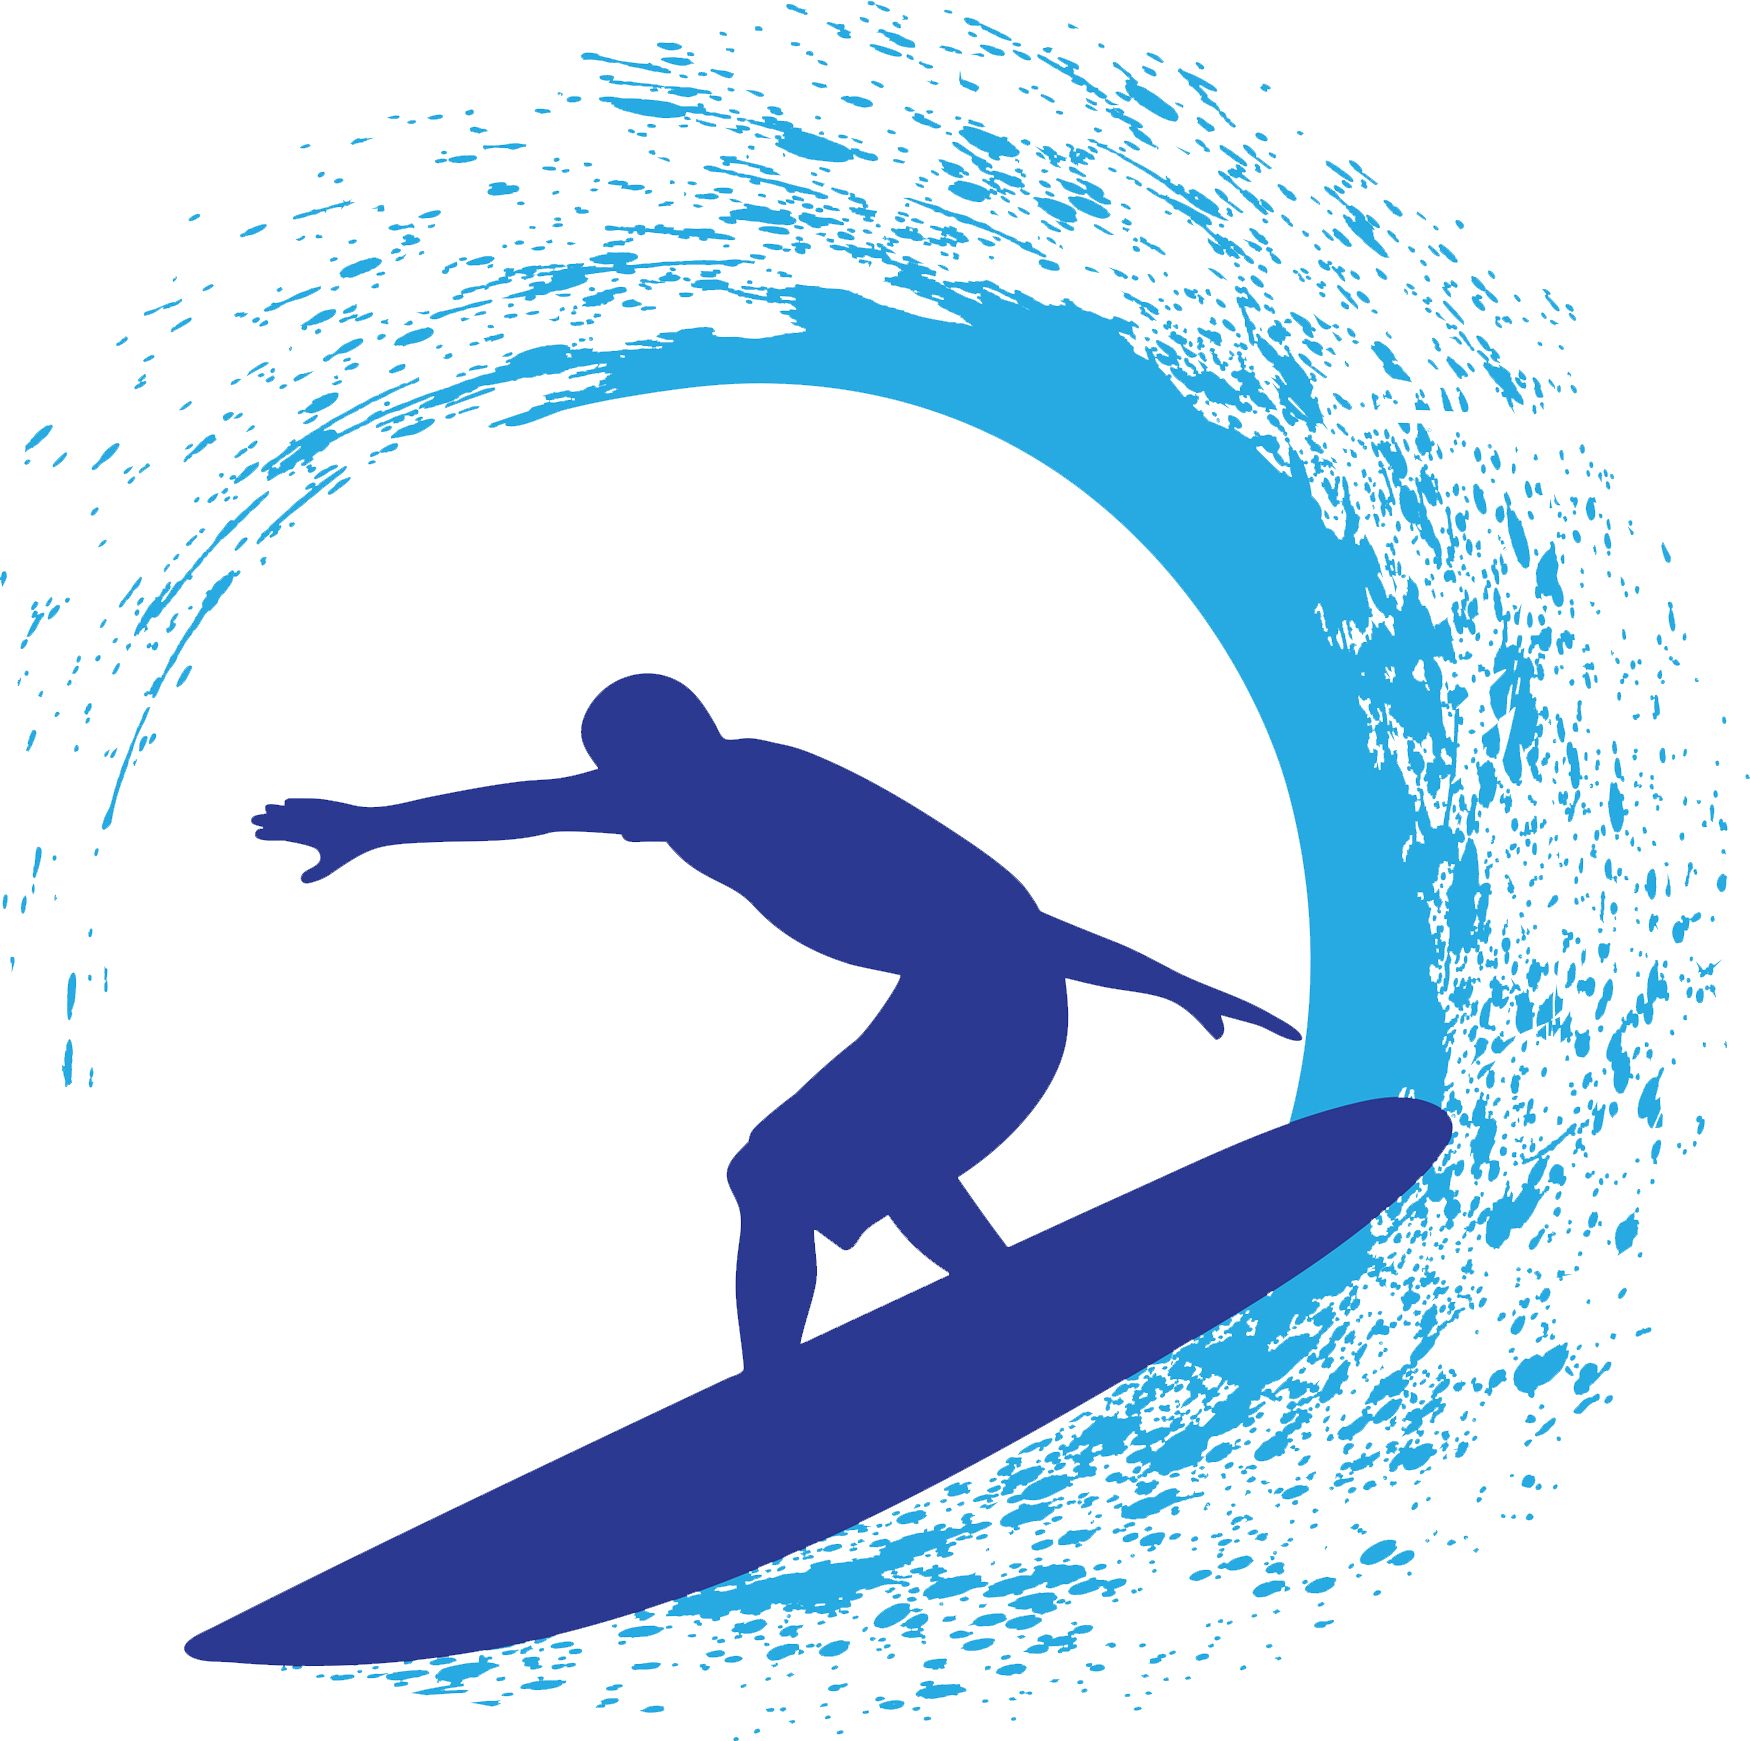 svg royalty free download Free download best on. Surf clipart.